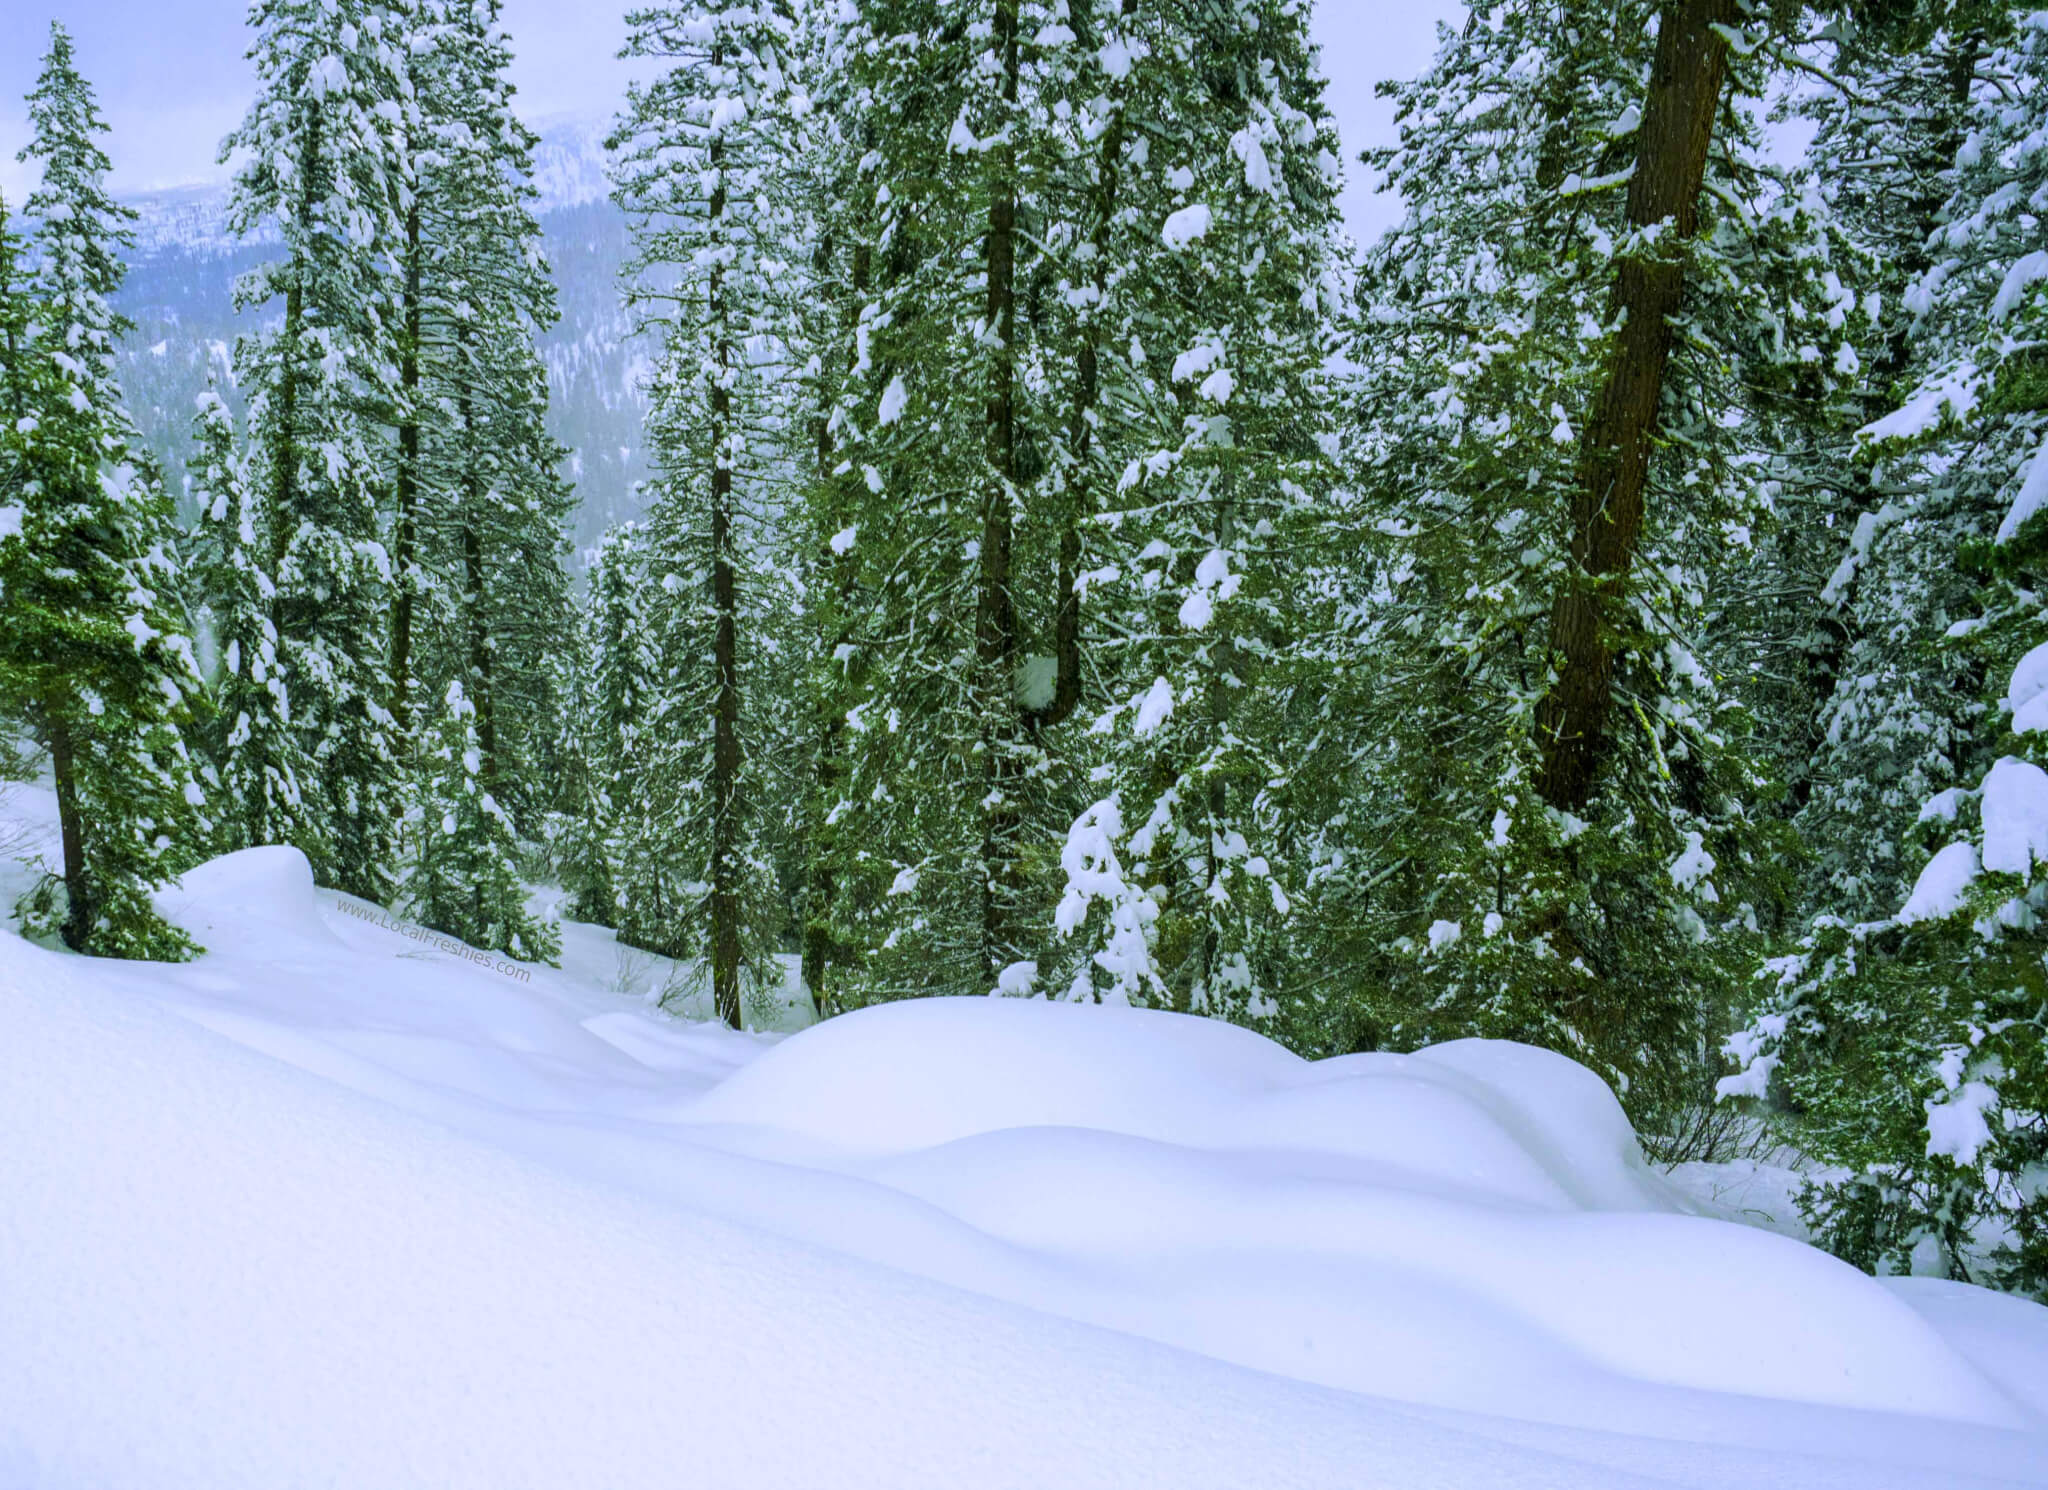 Backcountry skiing & snowboarding in the Payette National Forest near Brundage Resort by McCall Idaho